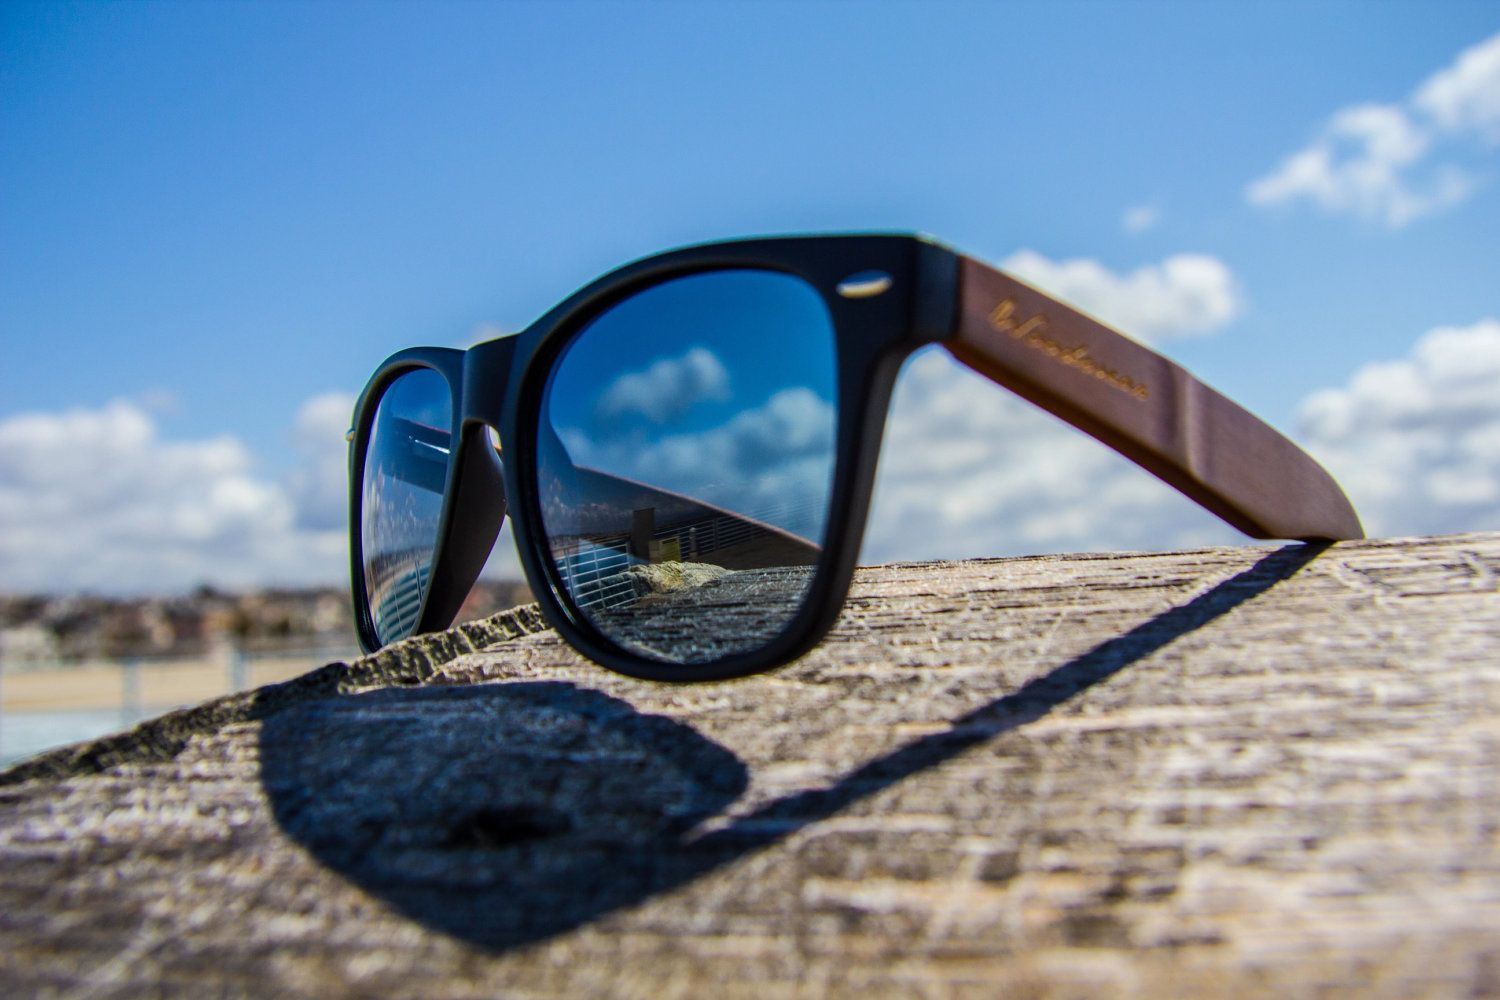 b392005742 Handmade wood wooden wayfarer style sunglasses. Made with Eco-friendly  Bamboo. Malibu Matte Black.